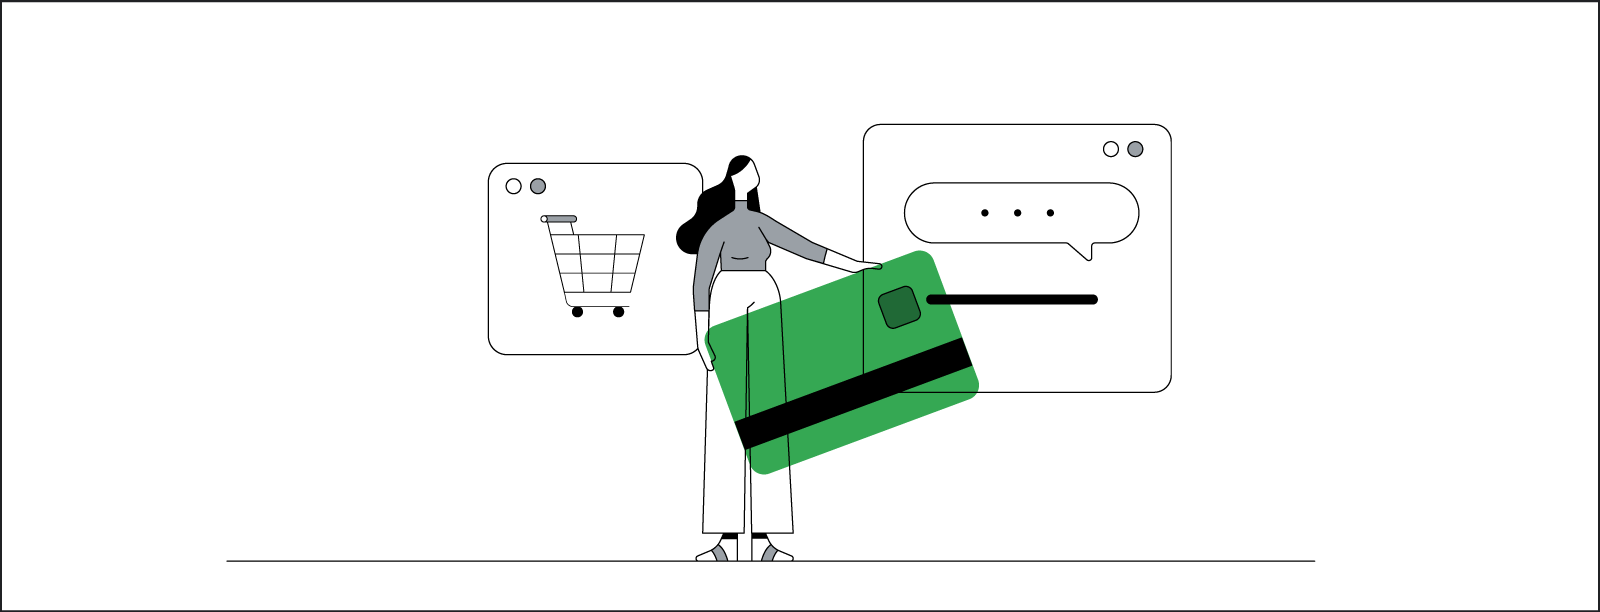 An illustration of a woman with long black hair standing between two life-size browser windows, one with a shopping cart and with an online chat in progress. She is holding a giant credit card.